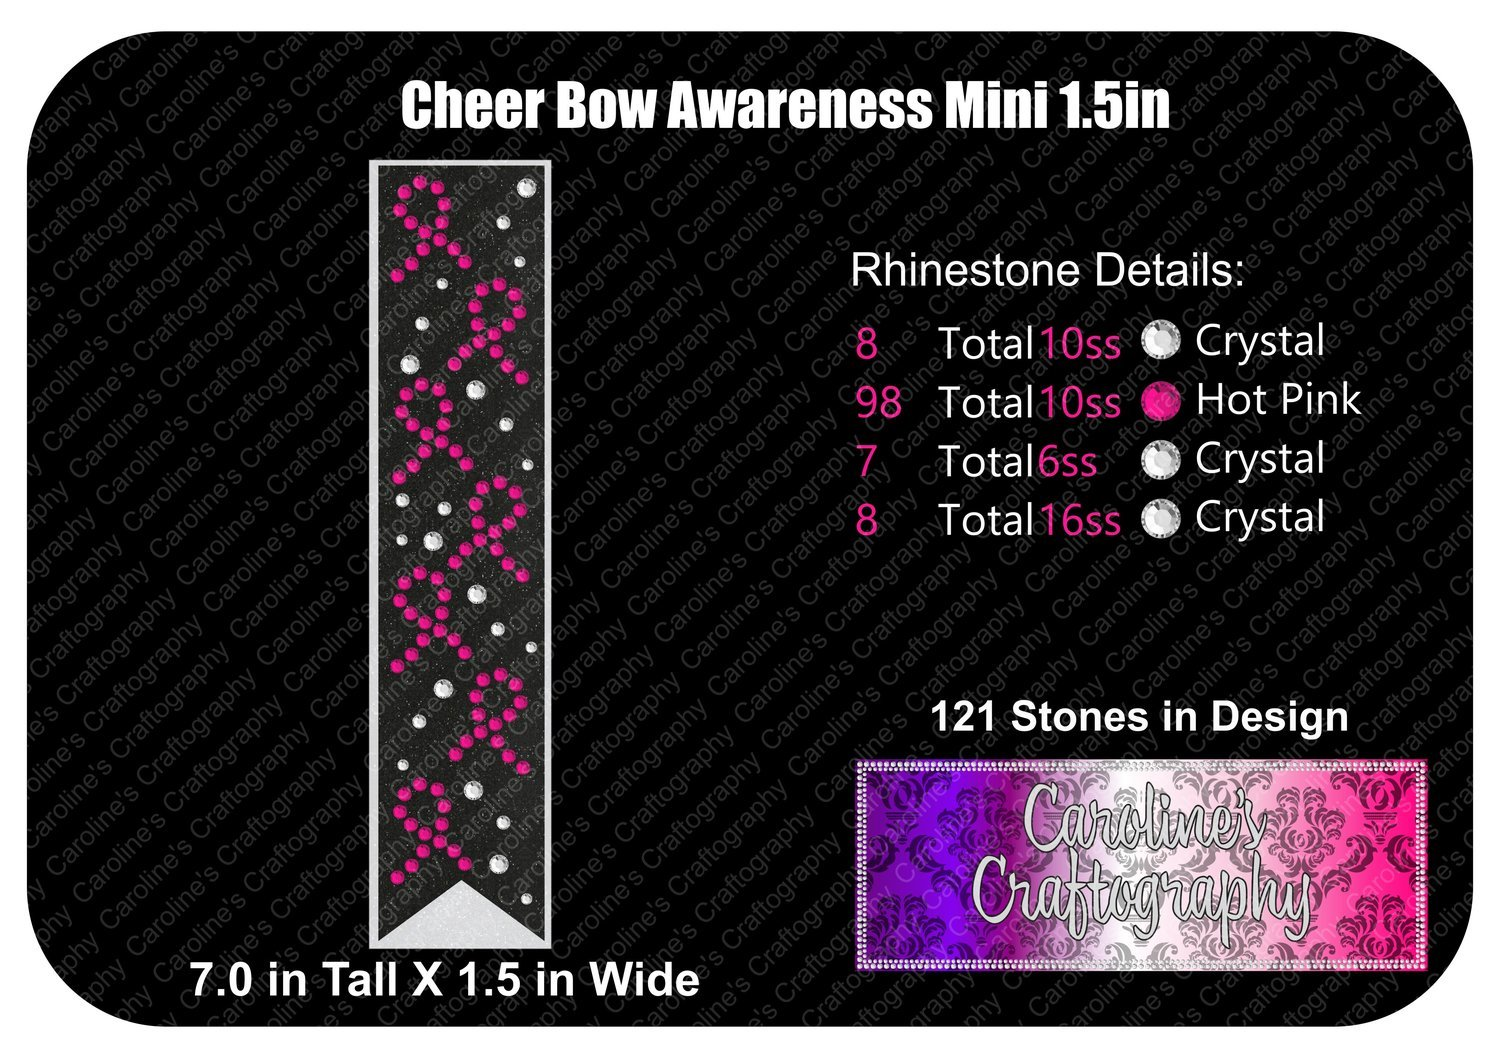 Awareness Ribbon 1.5in Mini Cheer Bow Stone